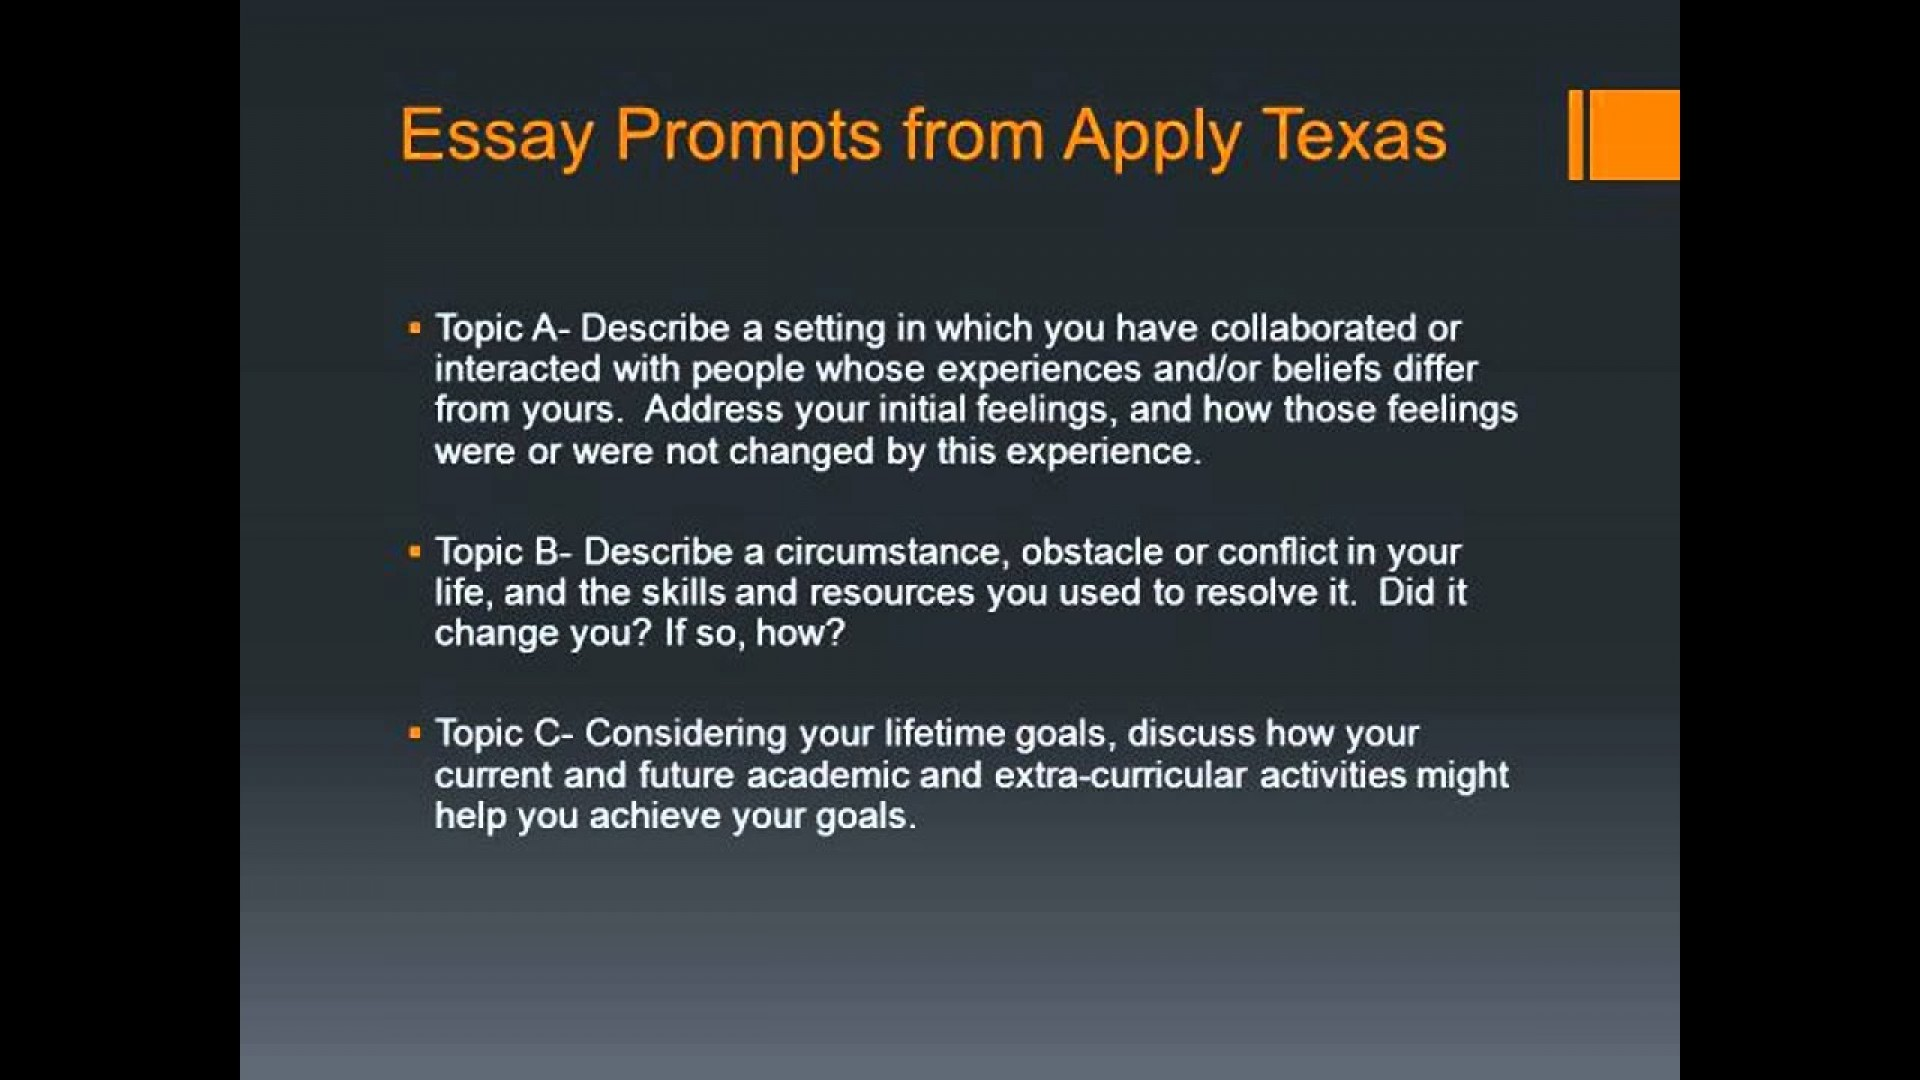 006 Essay Example Apply Texas Examples Unusual Topic A C 2017 1920